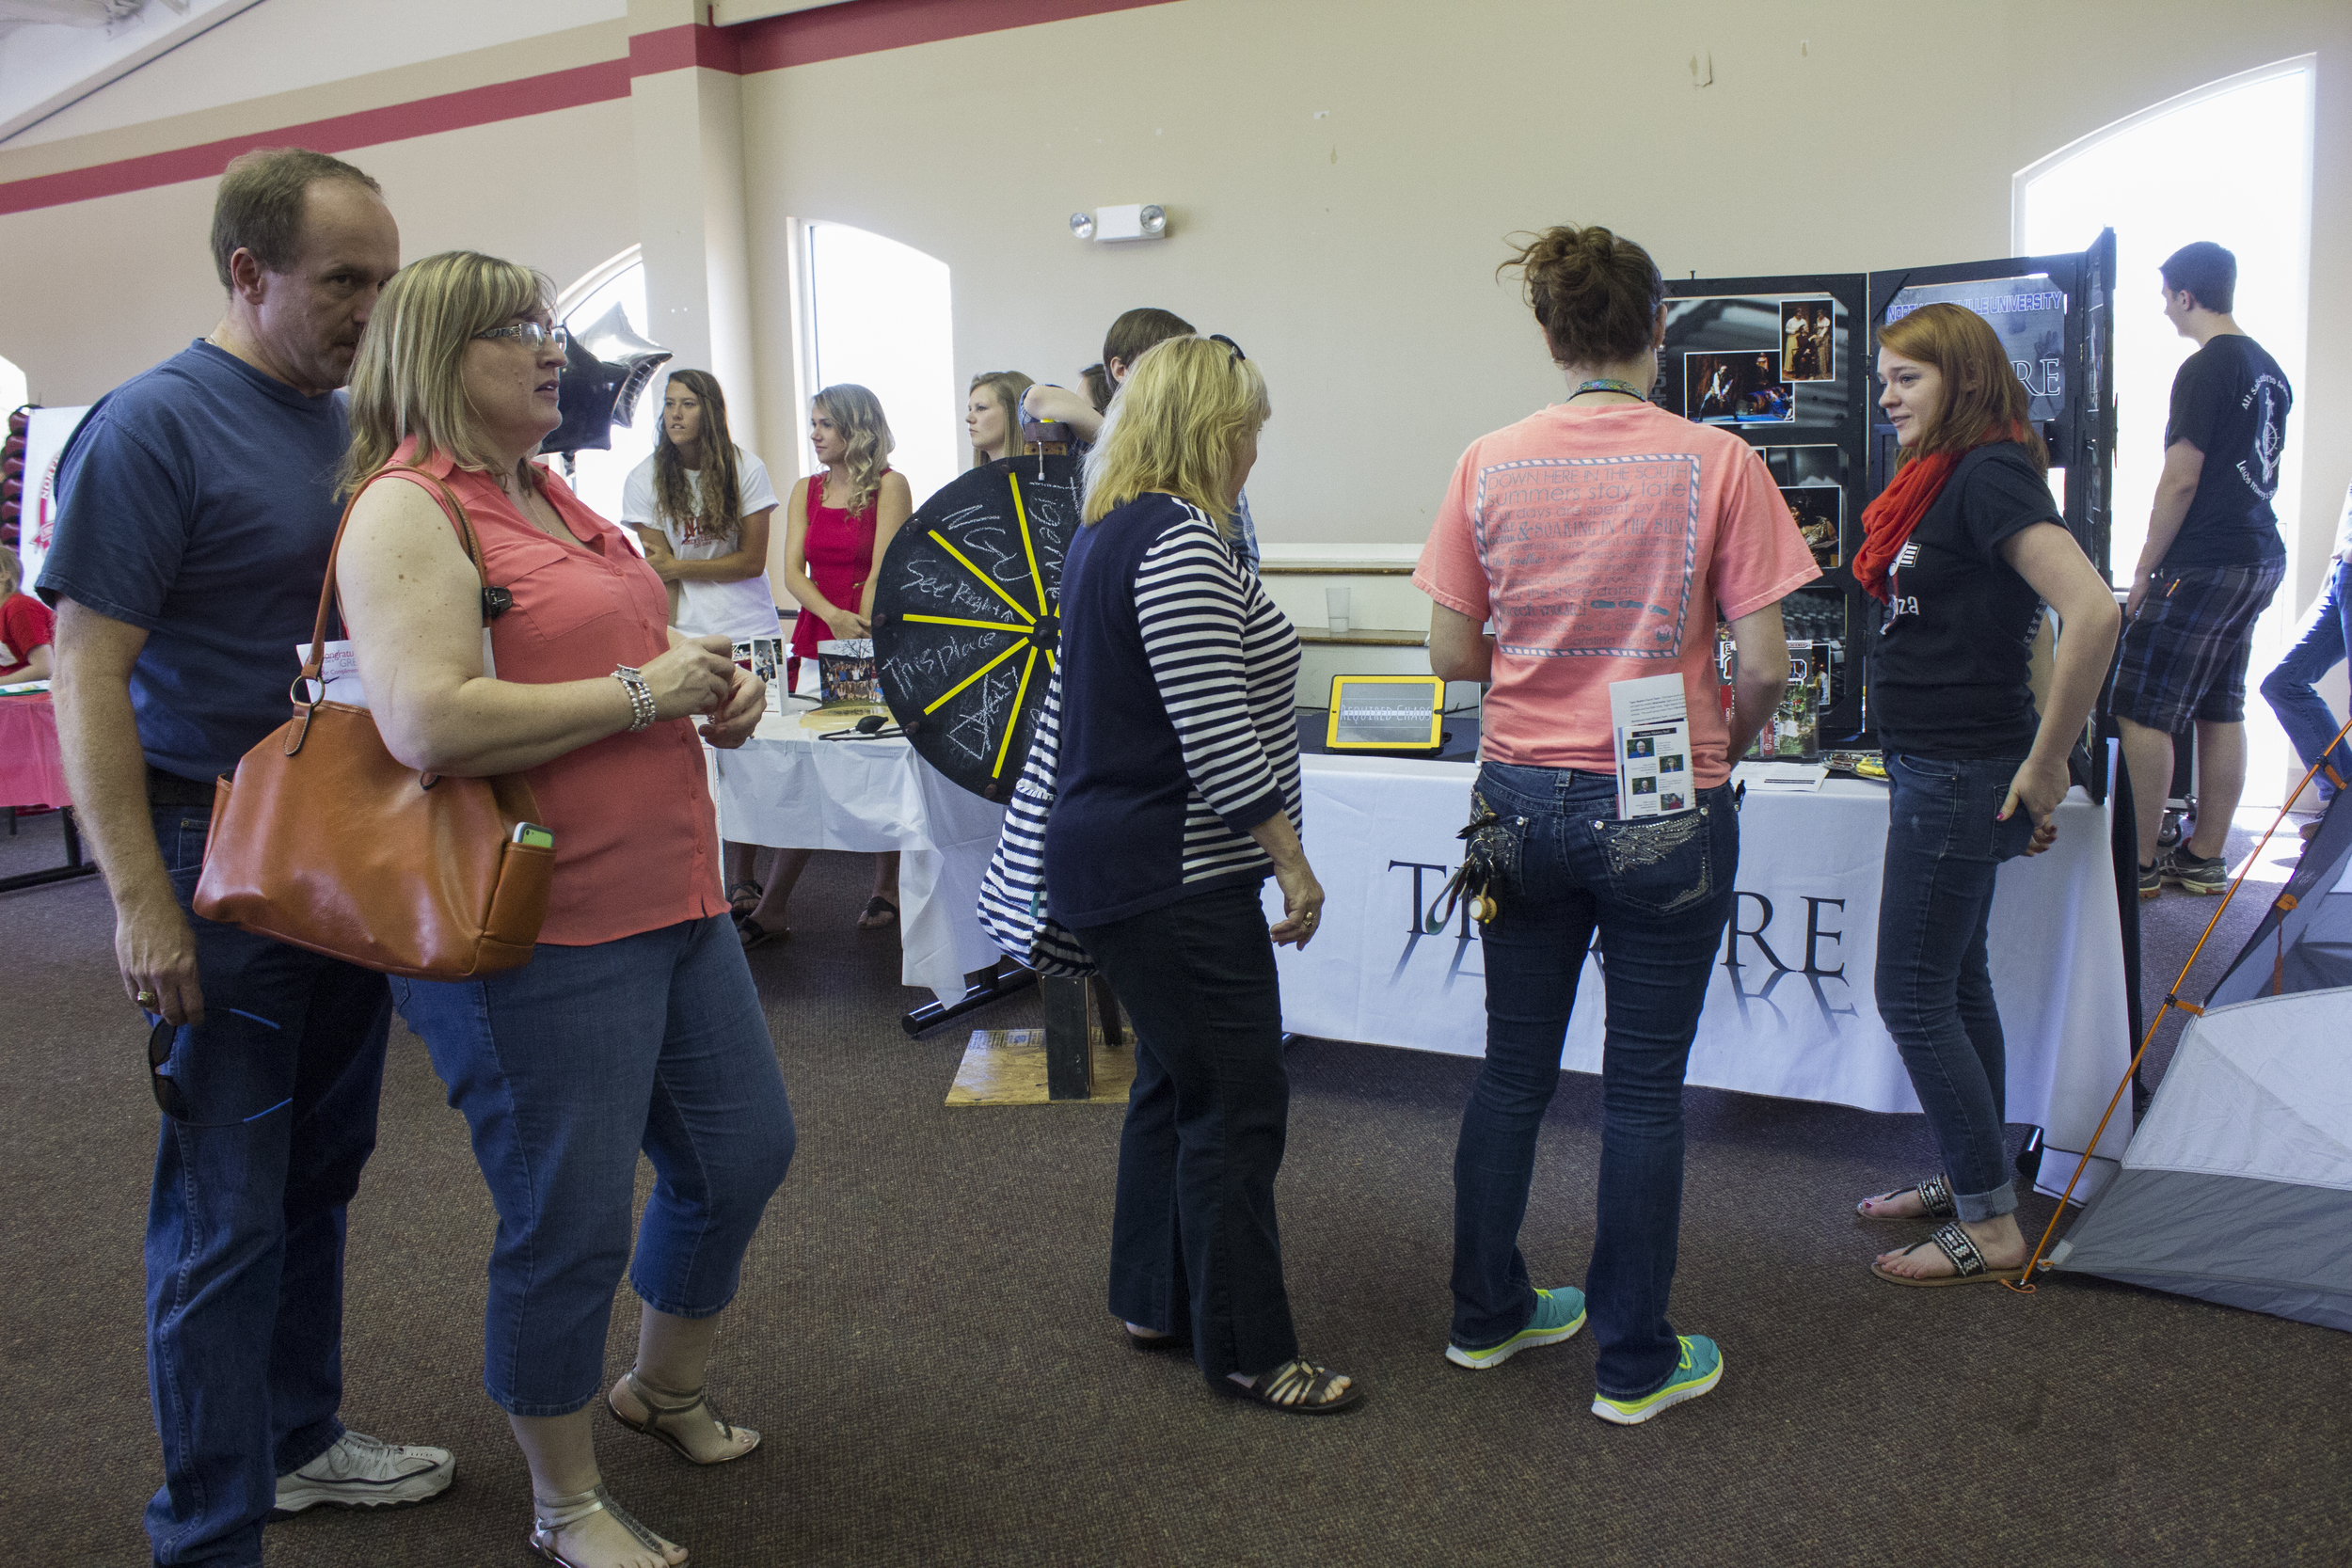 Students at thetheatre booth explain what theatre has the ability to do at the NGU campus.